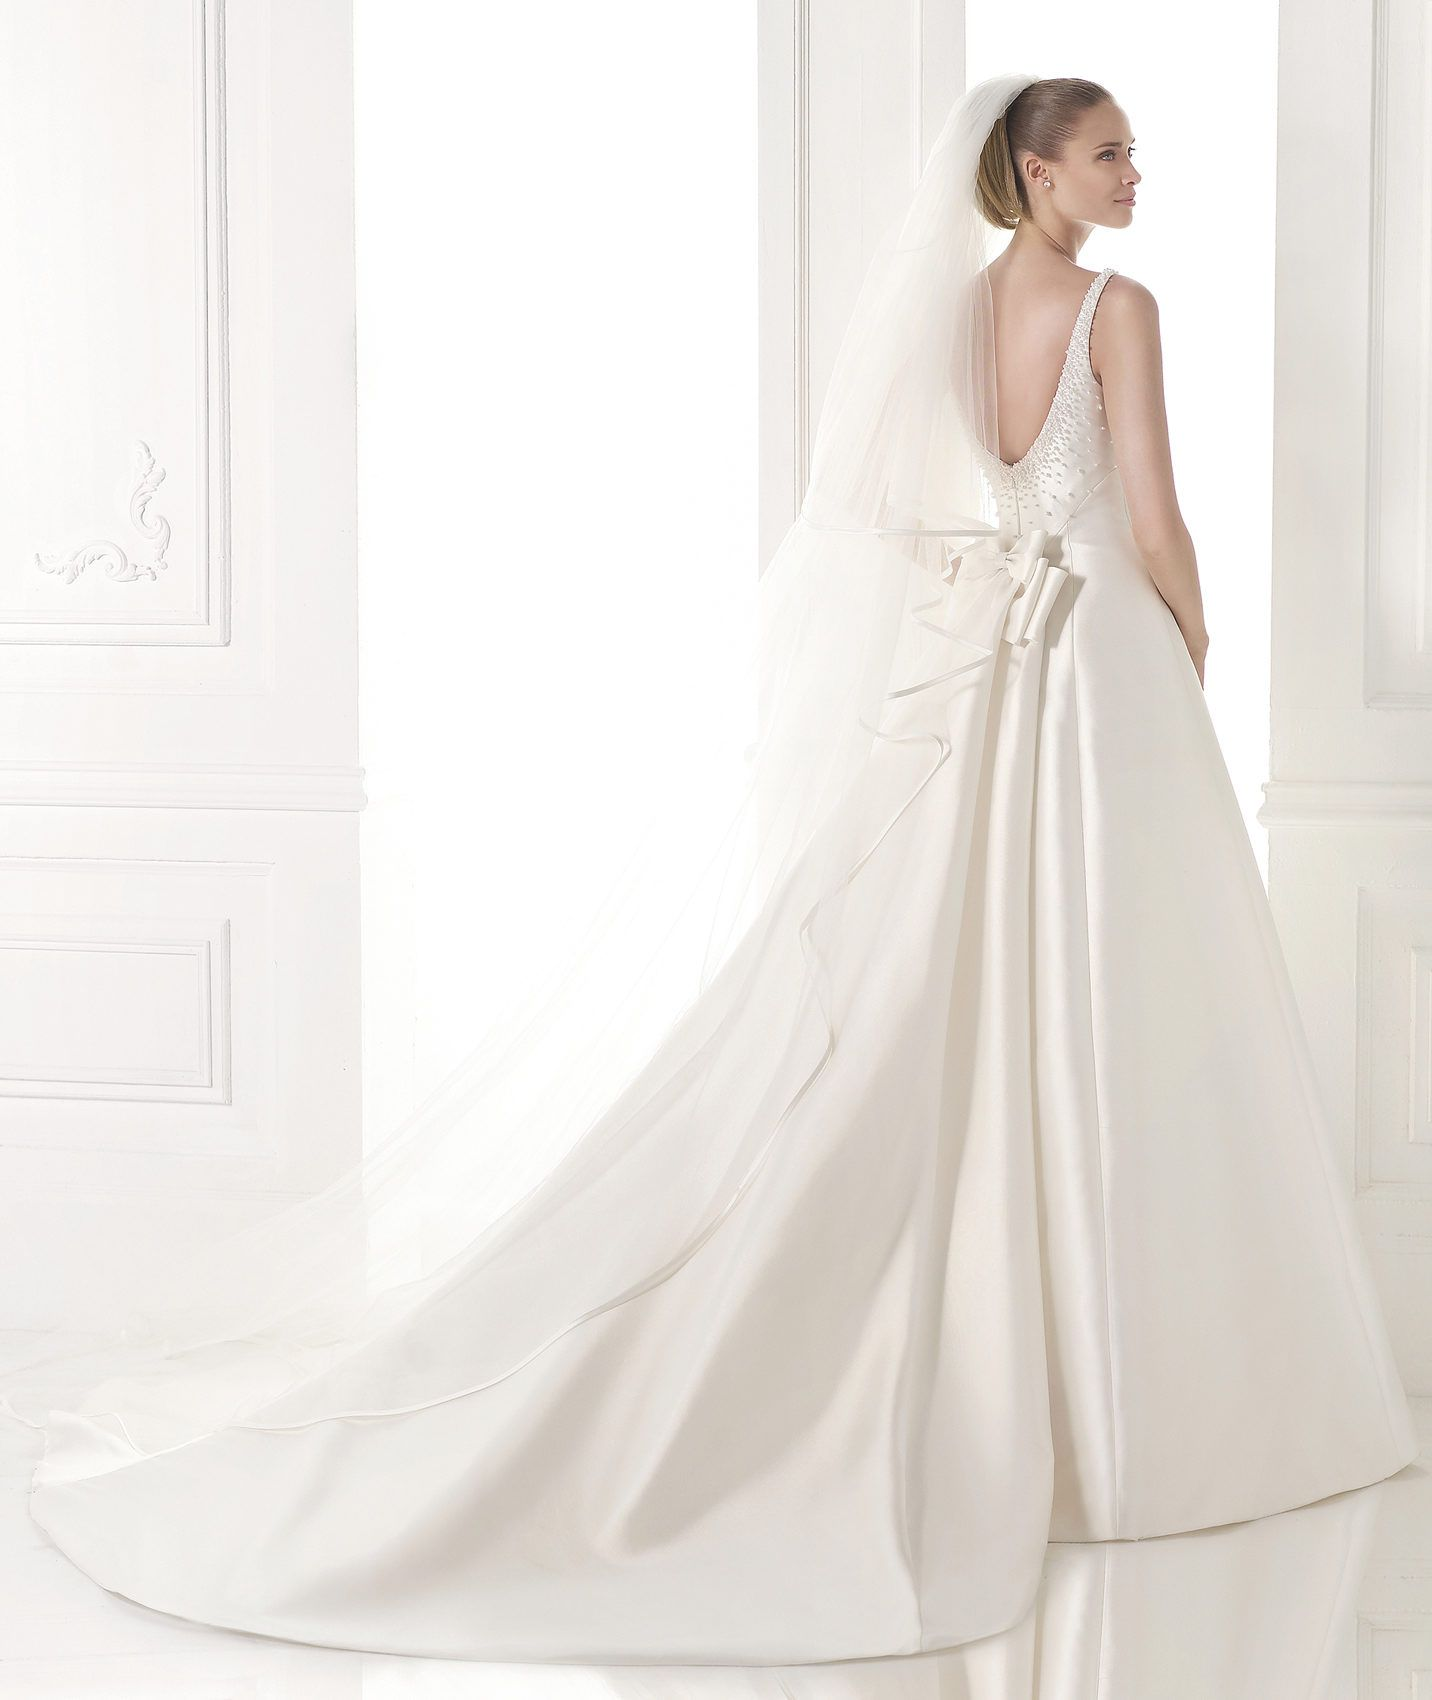 Marialis wedding dress with detachable train collection